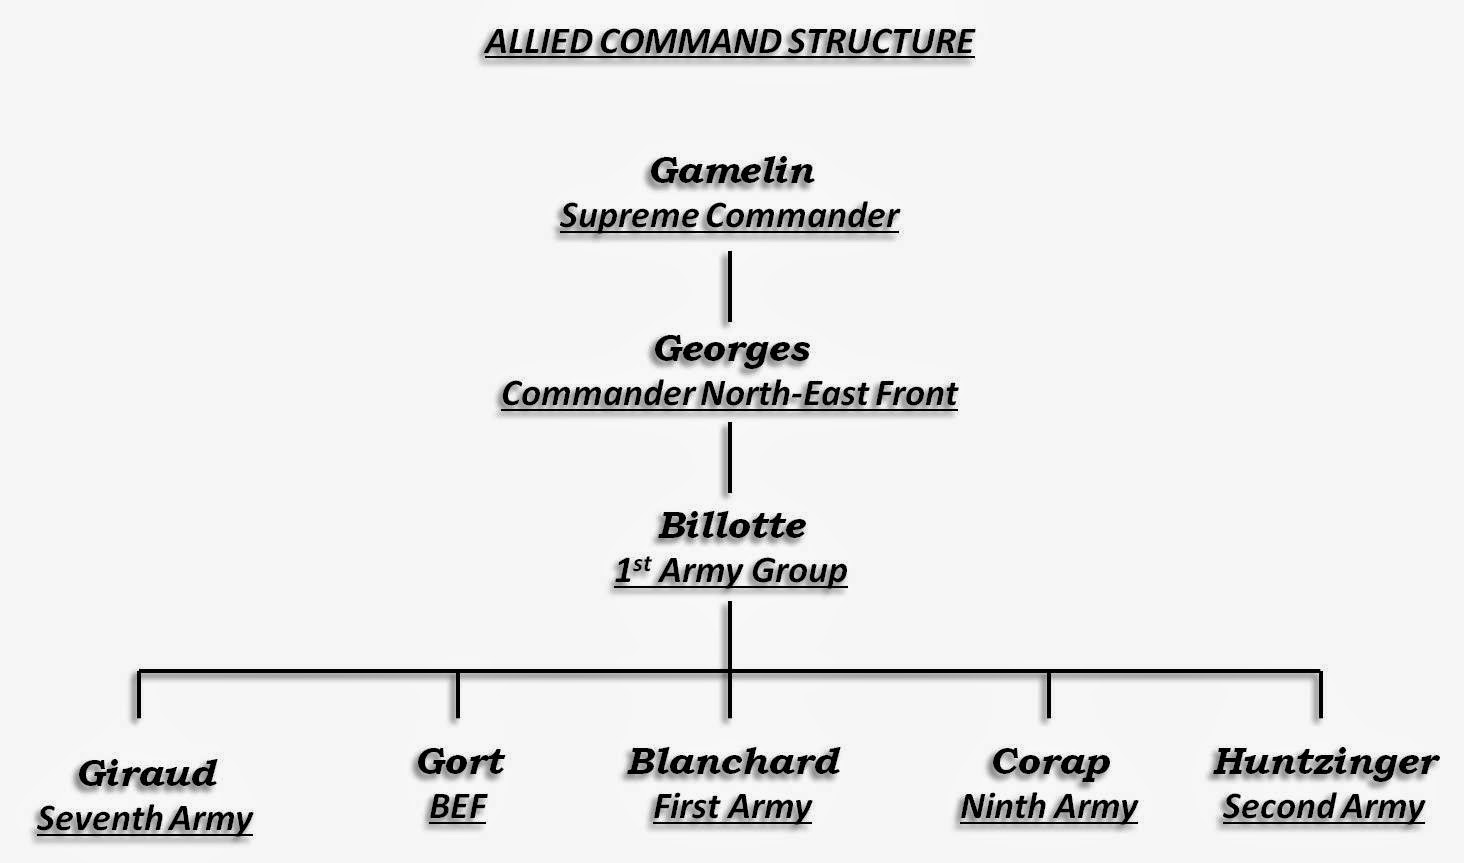 Allied command structure